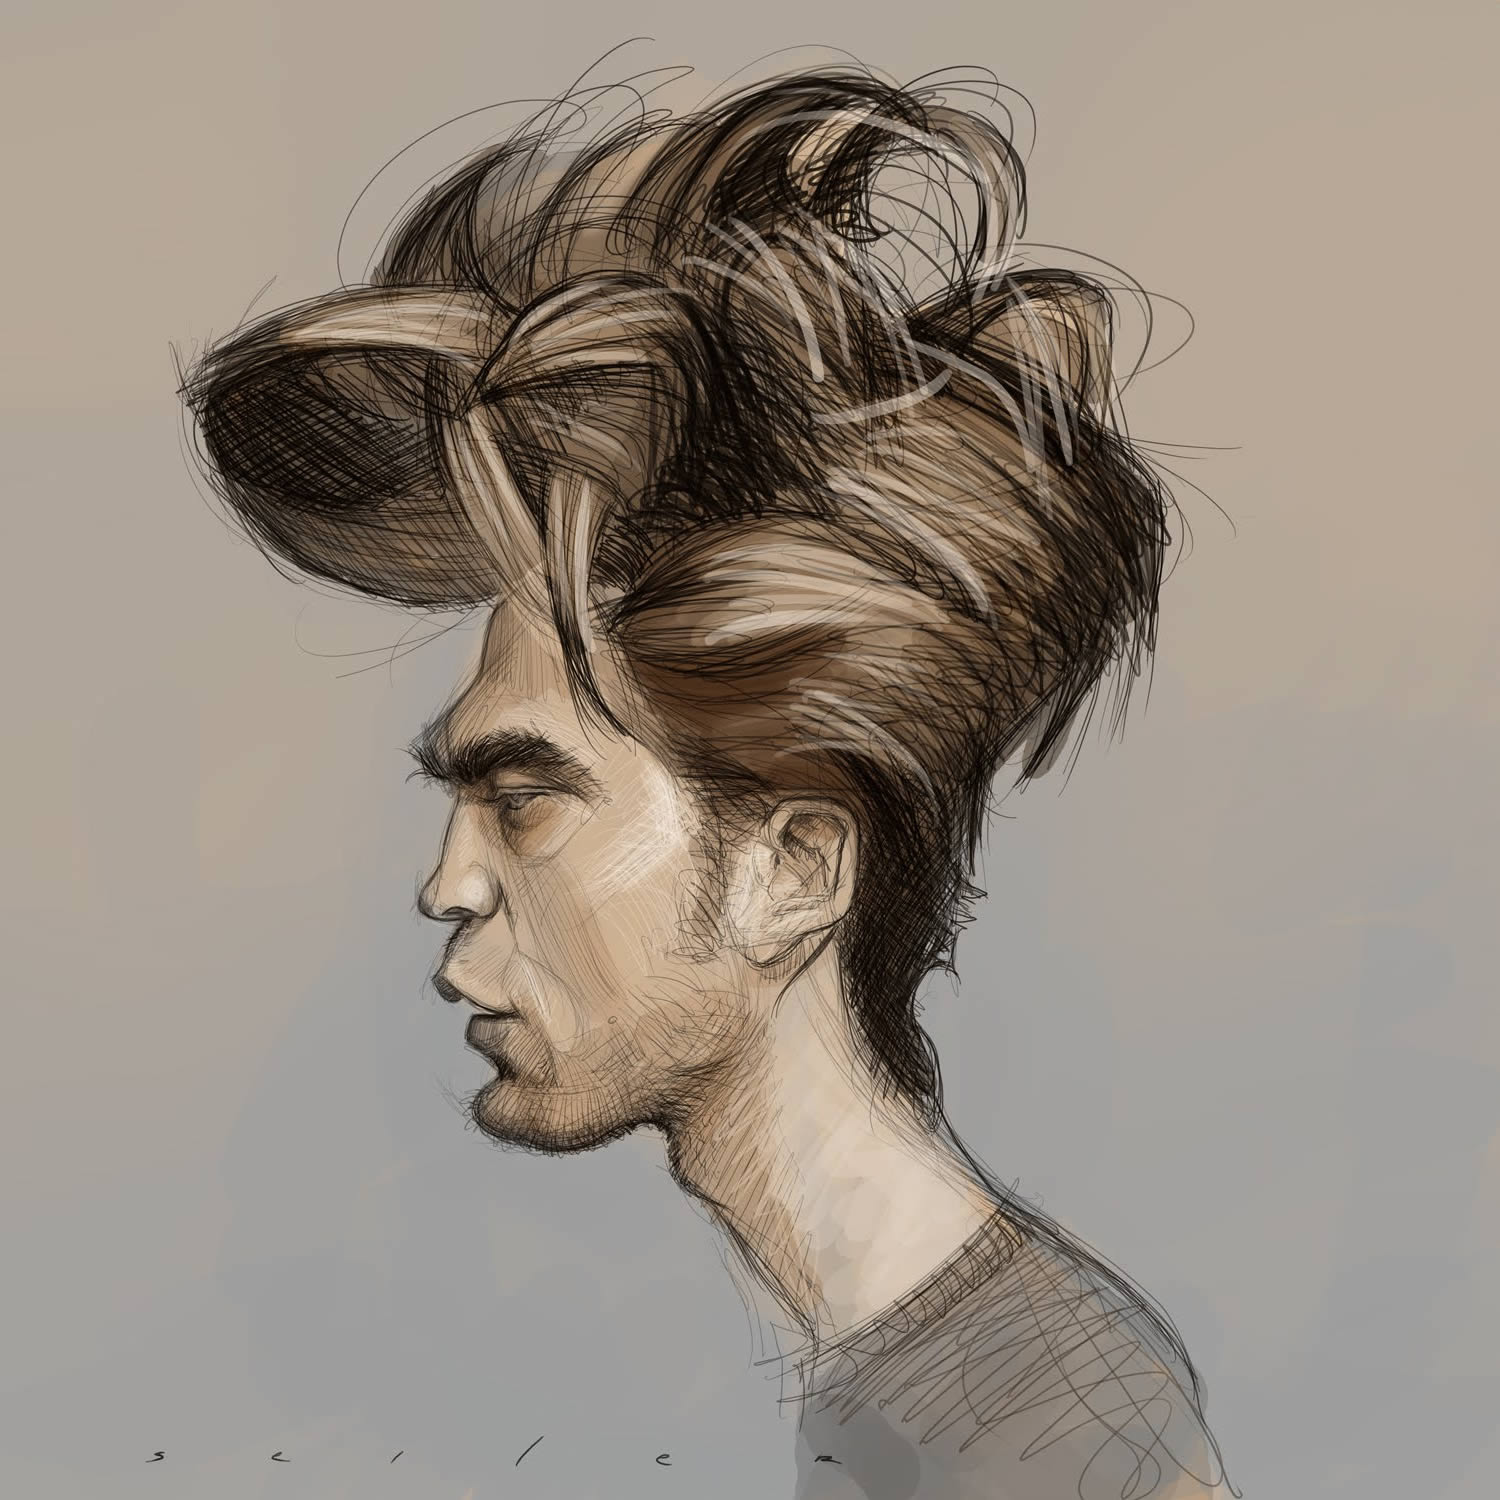 Robert Pattison (from Twilight), caricature by jason seiler